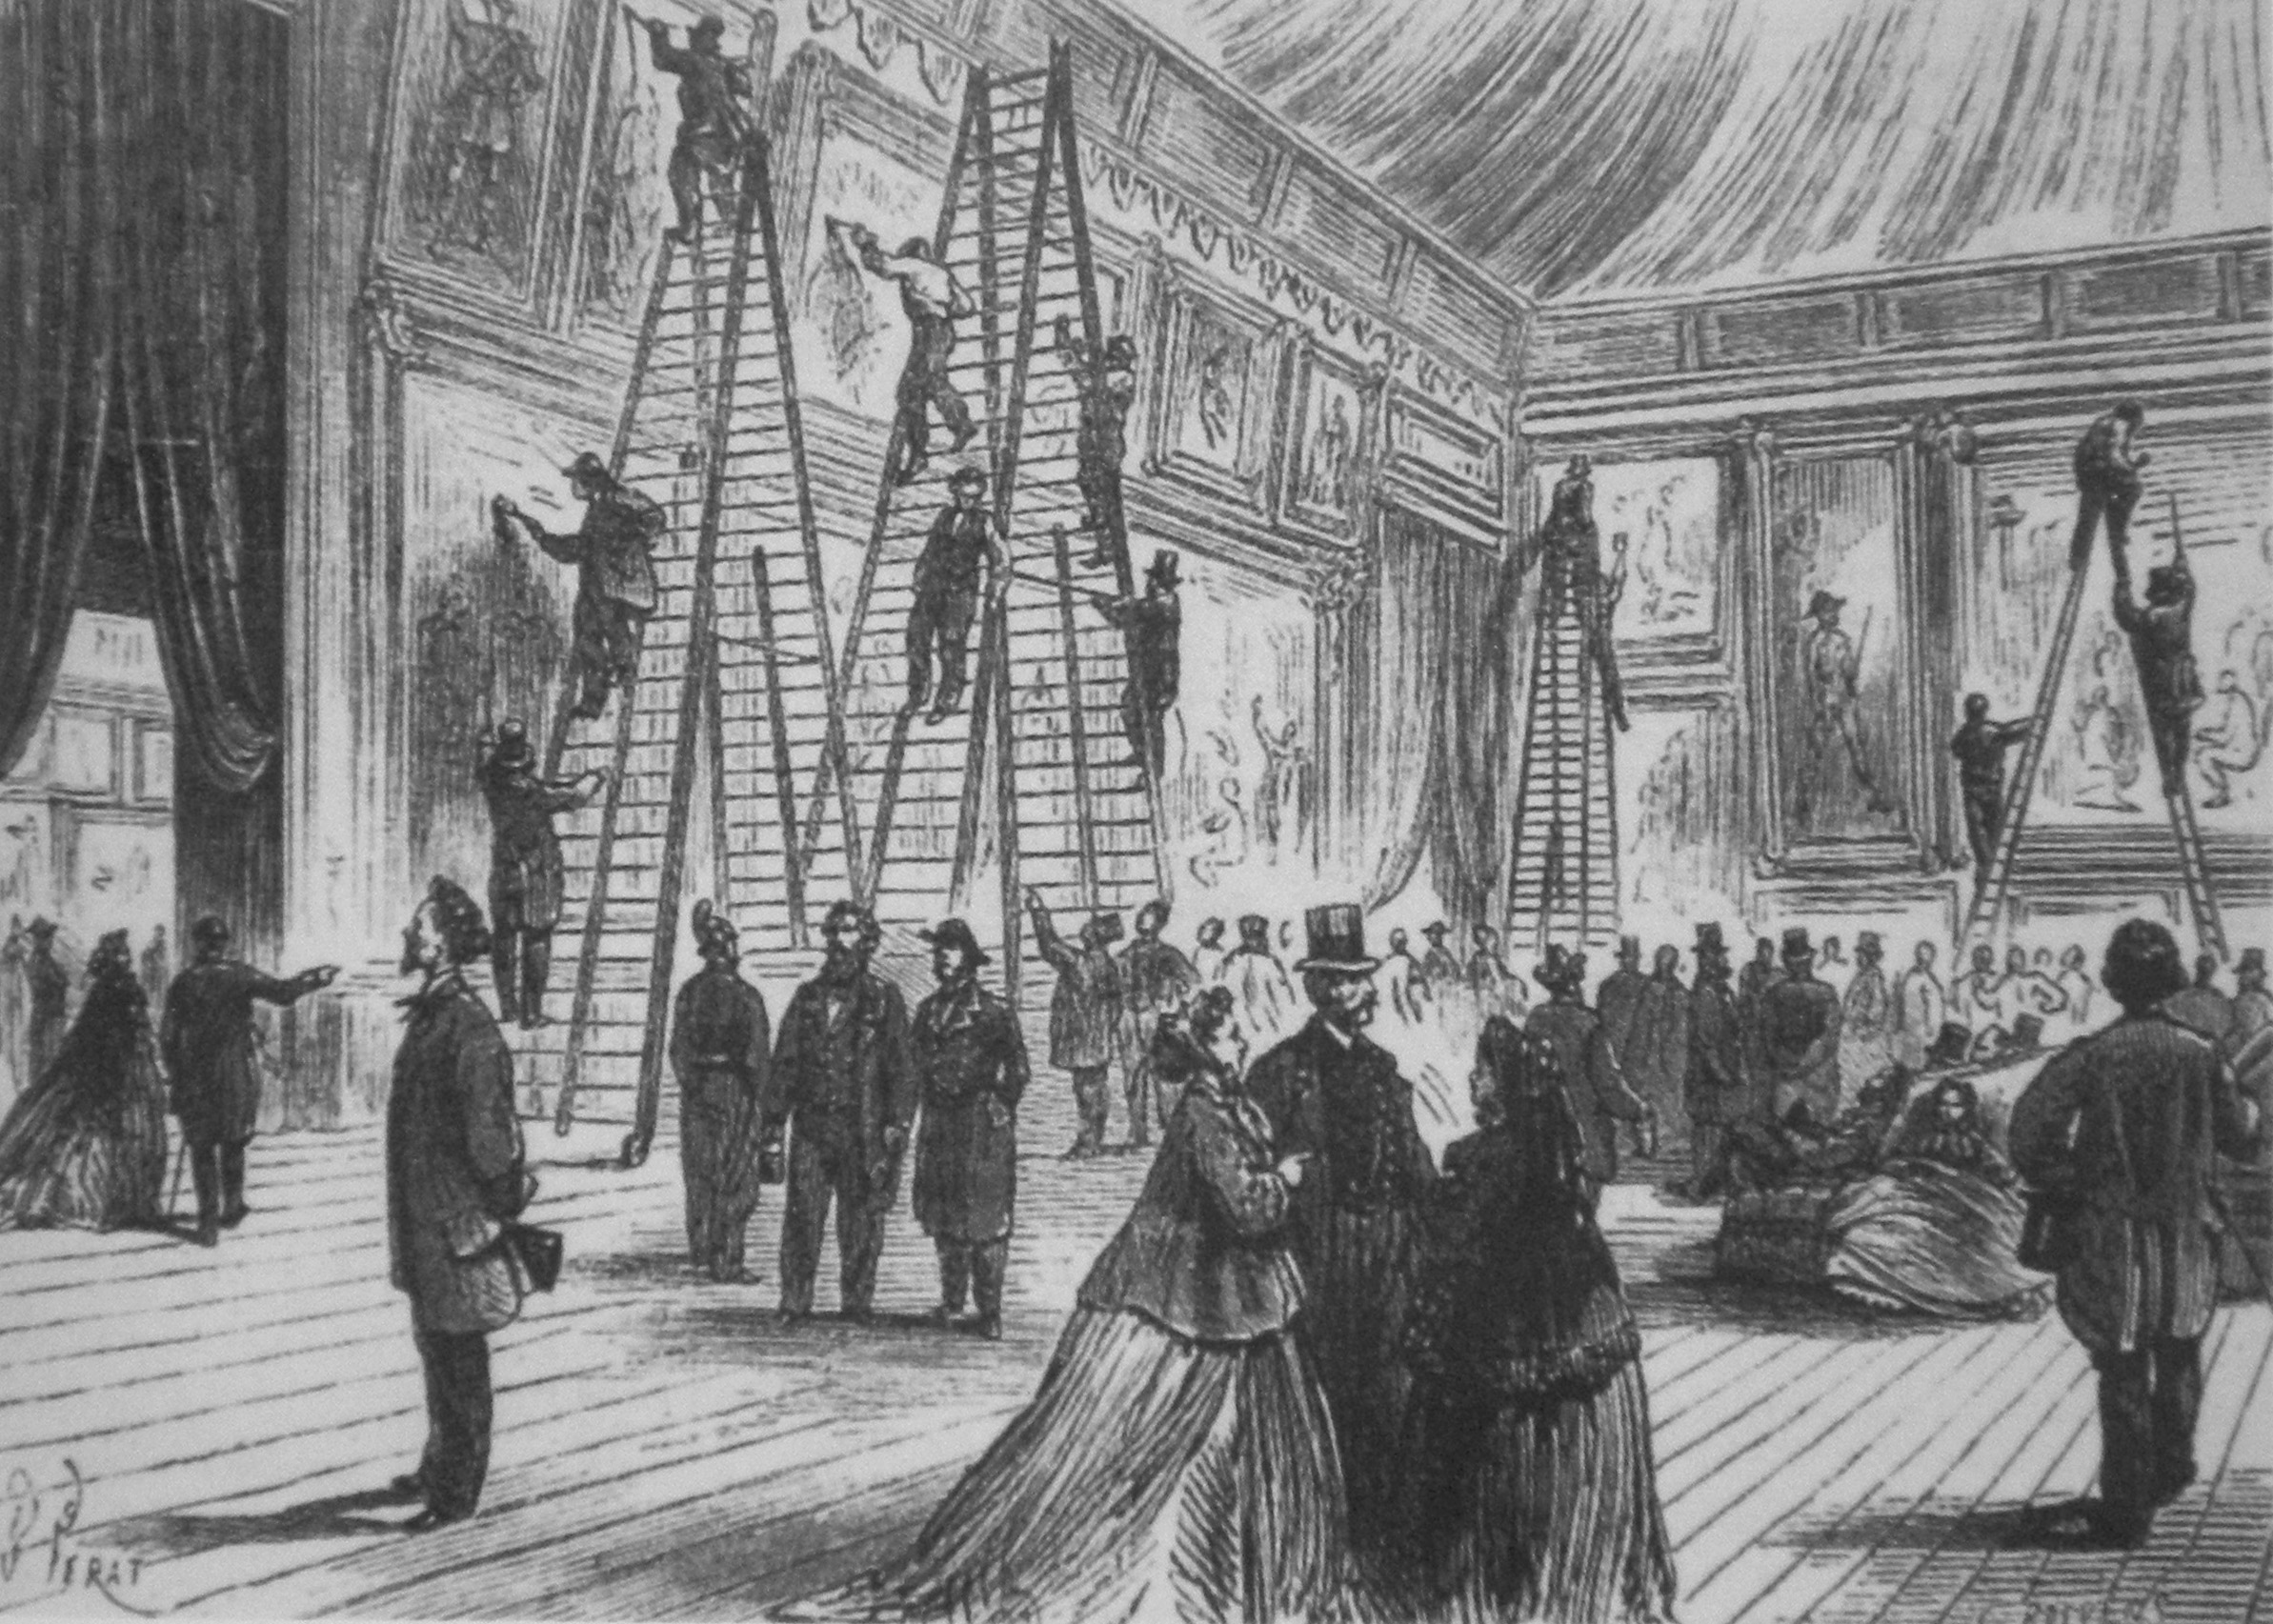 File:B. Perat, Vernissage au salon, Paris 1866.jpg